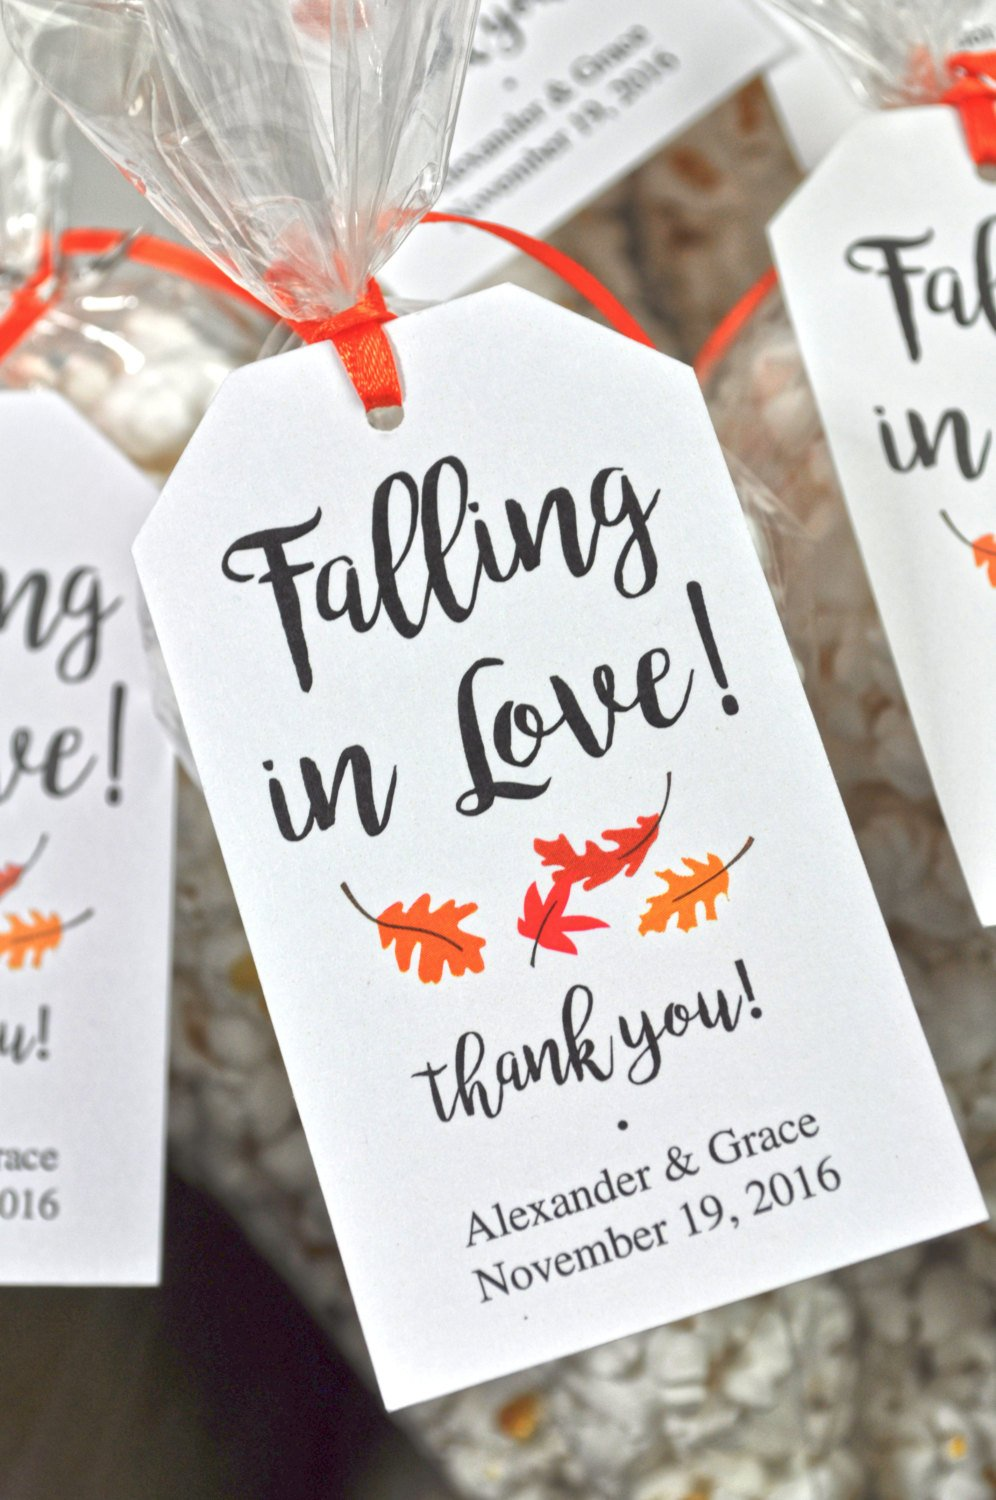 Gift Tags For Wedding Favors: Bridal Shower Favor Tags, Wedding Favors, Falling In Love